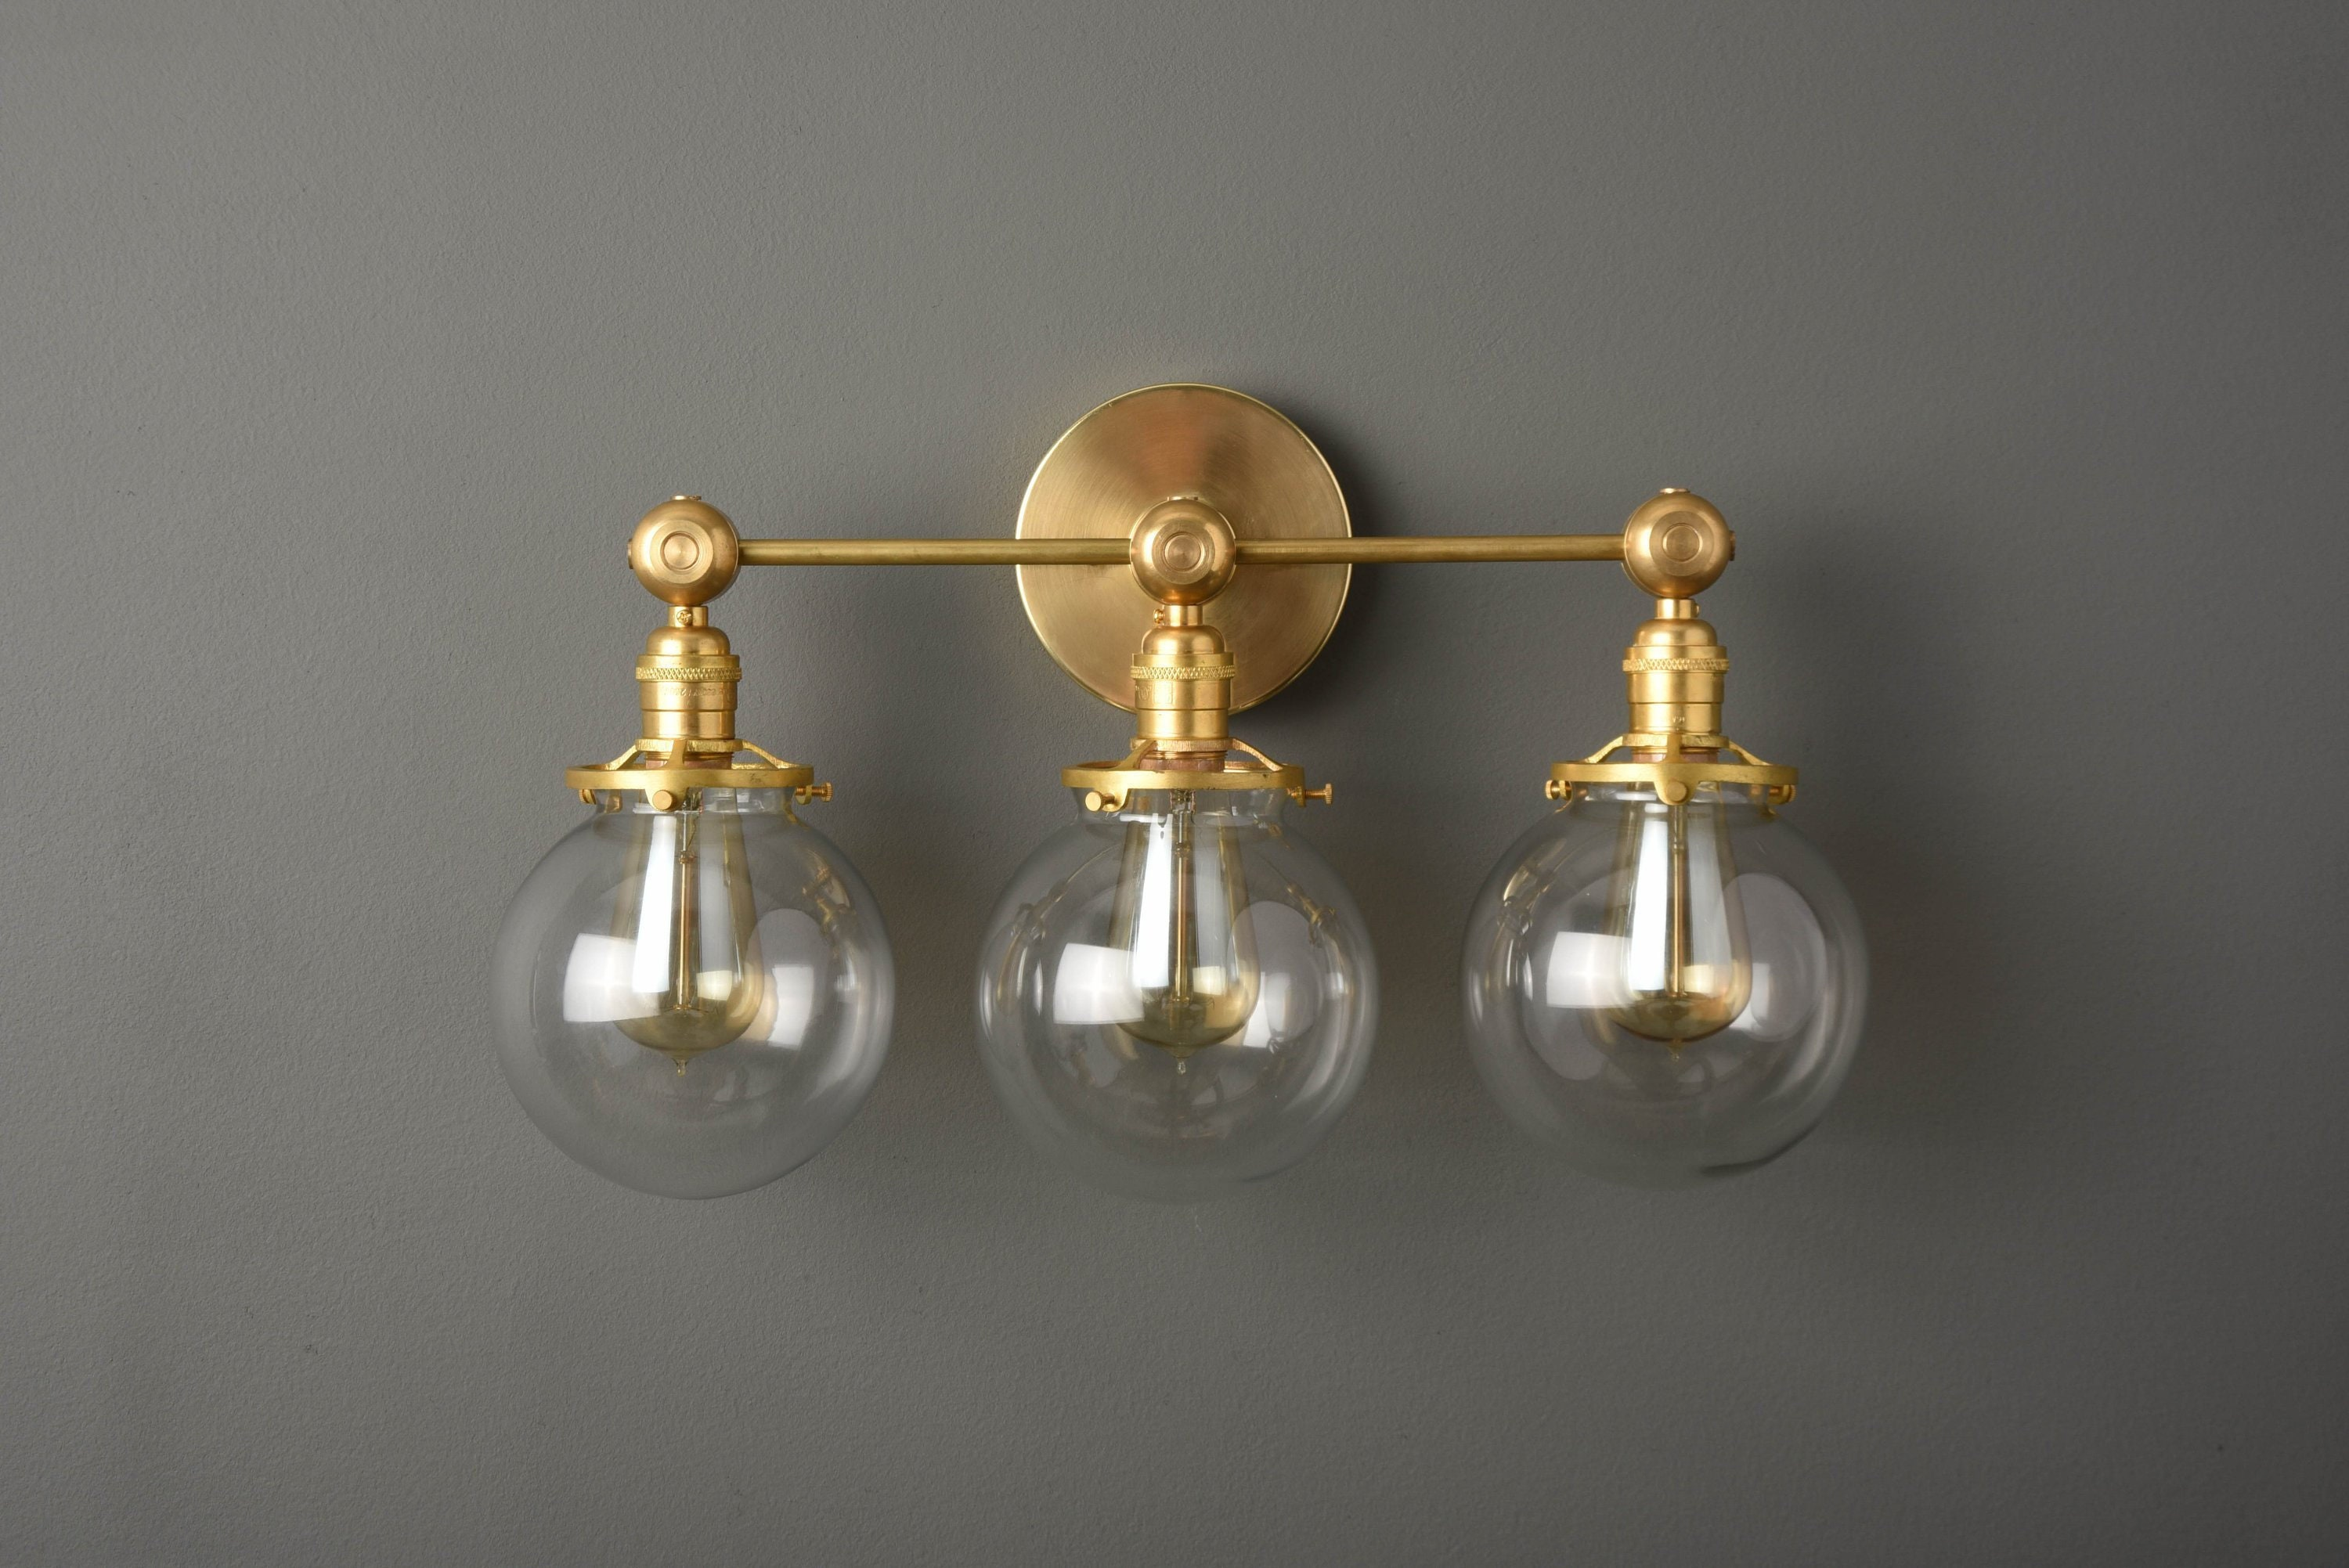 Industrial Globe Sconce Gold Vanity Light Mid Century Modern